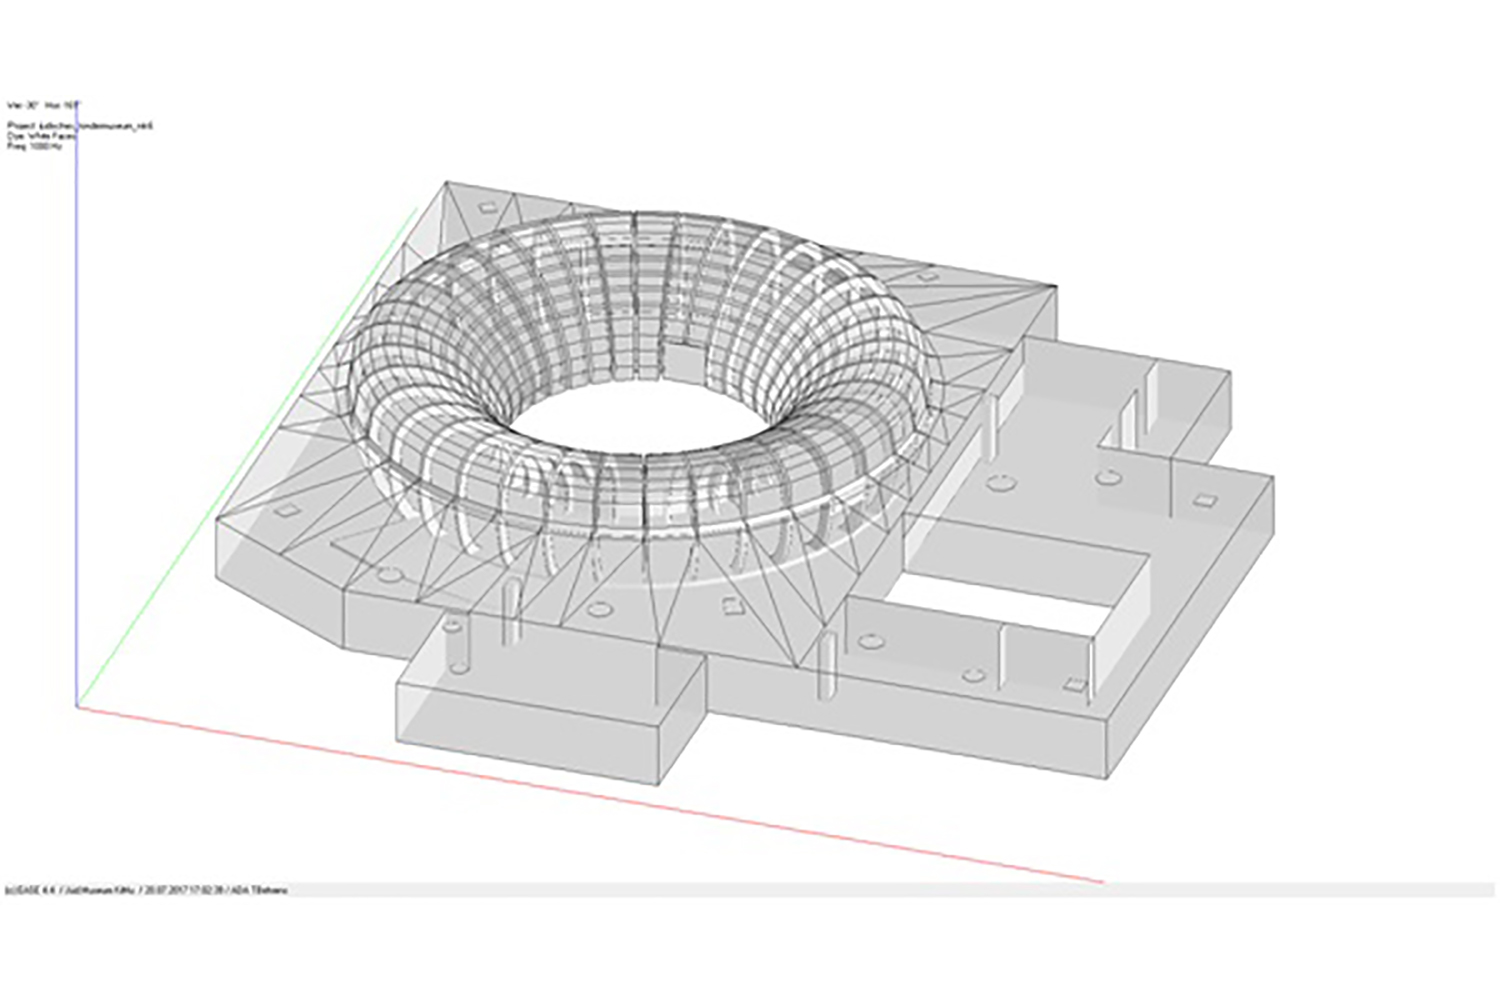 ANOHA, inside the Jewish Museum of Berlin, secured WSDG to perfect the acoustics of the spaces without compromising the design. Acoustical model, axonometric view.